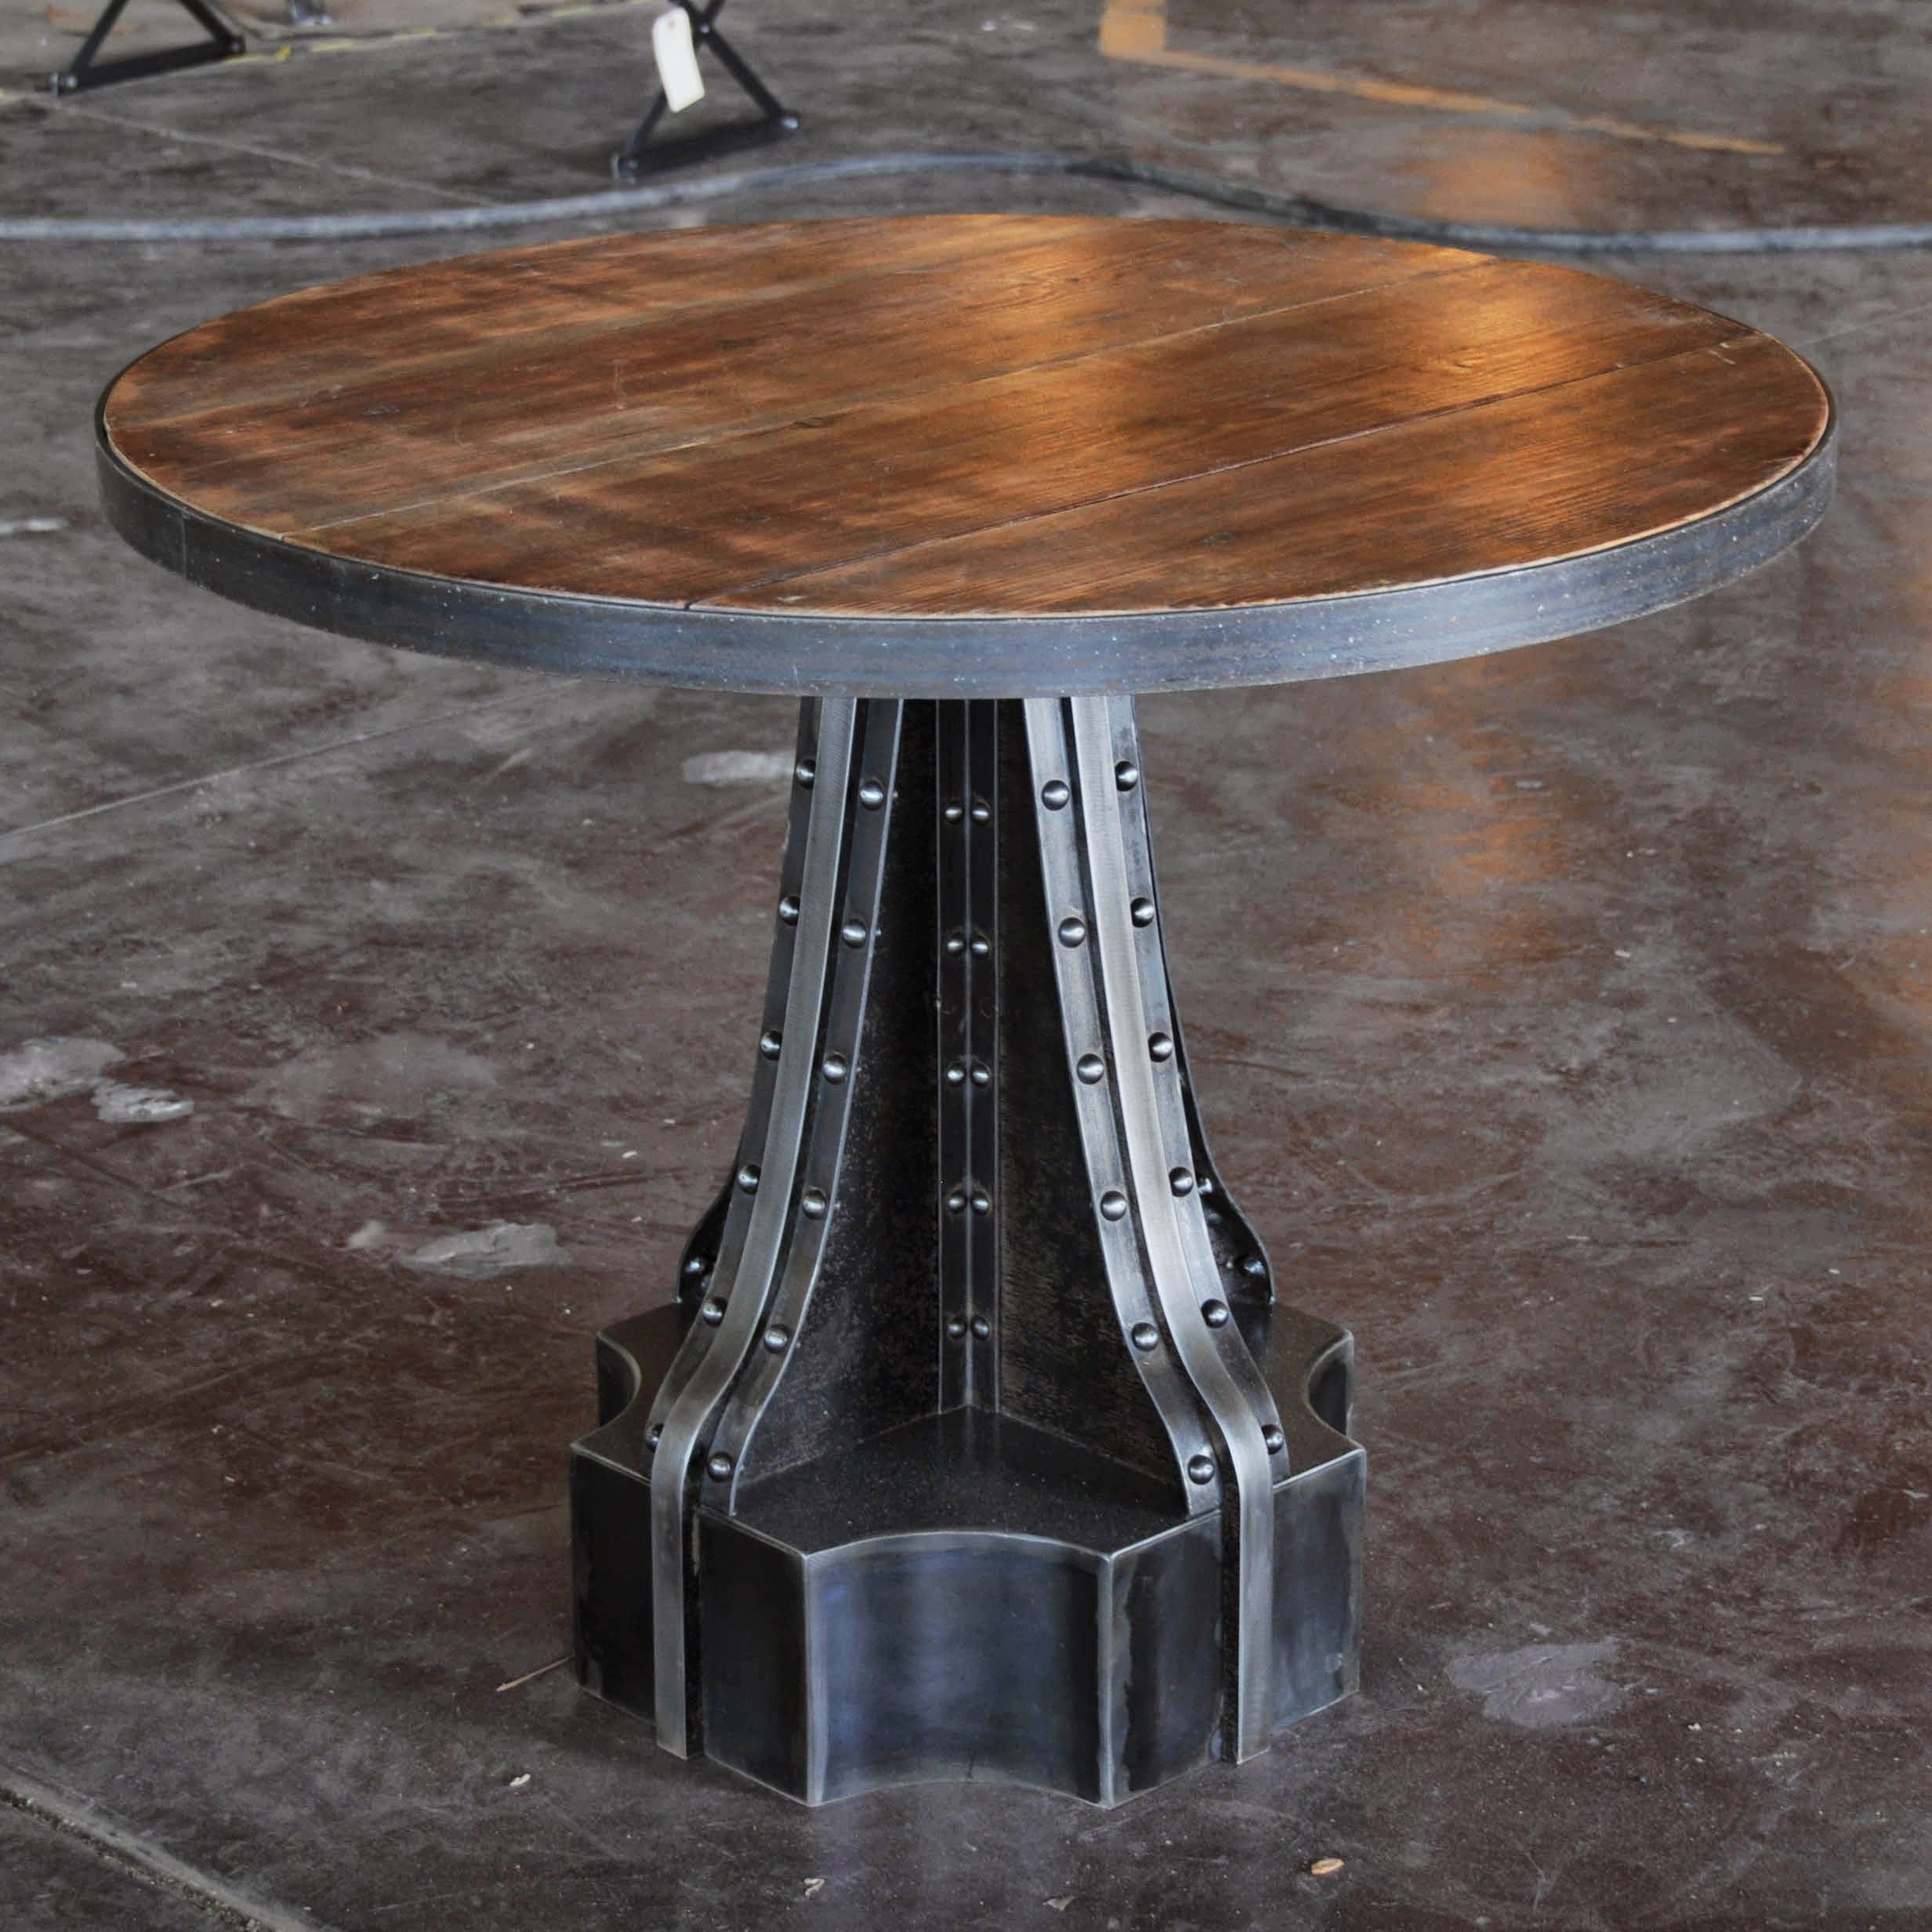 French Column Table French industrial decor, Vintage